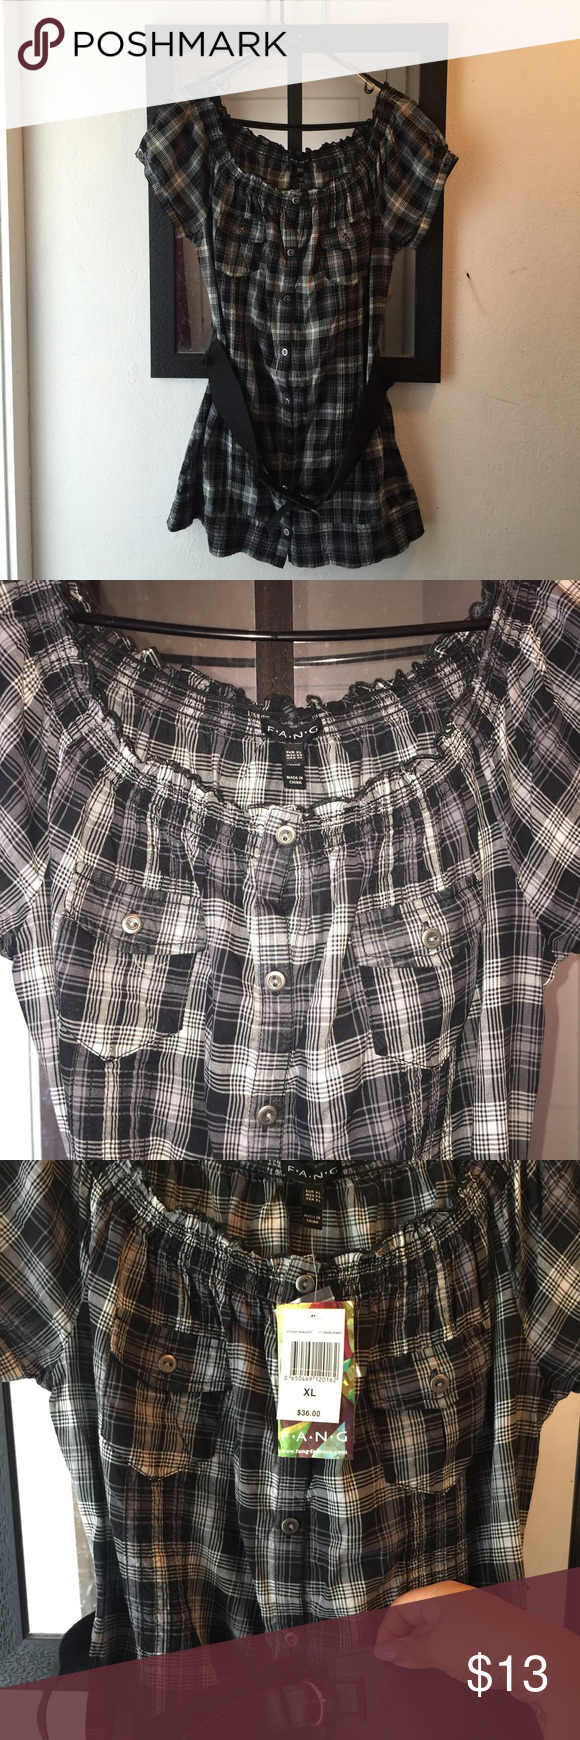 Tunic/Tee belted 100% cotton. Color: plaid, black gray and white. Brand: FANG from Kohl's Tops Tunics